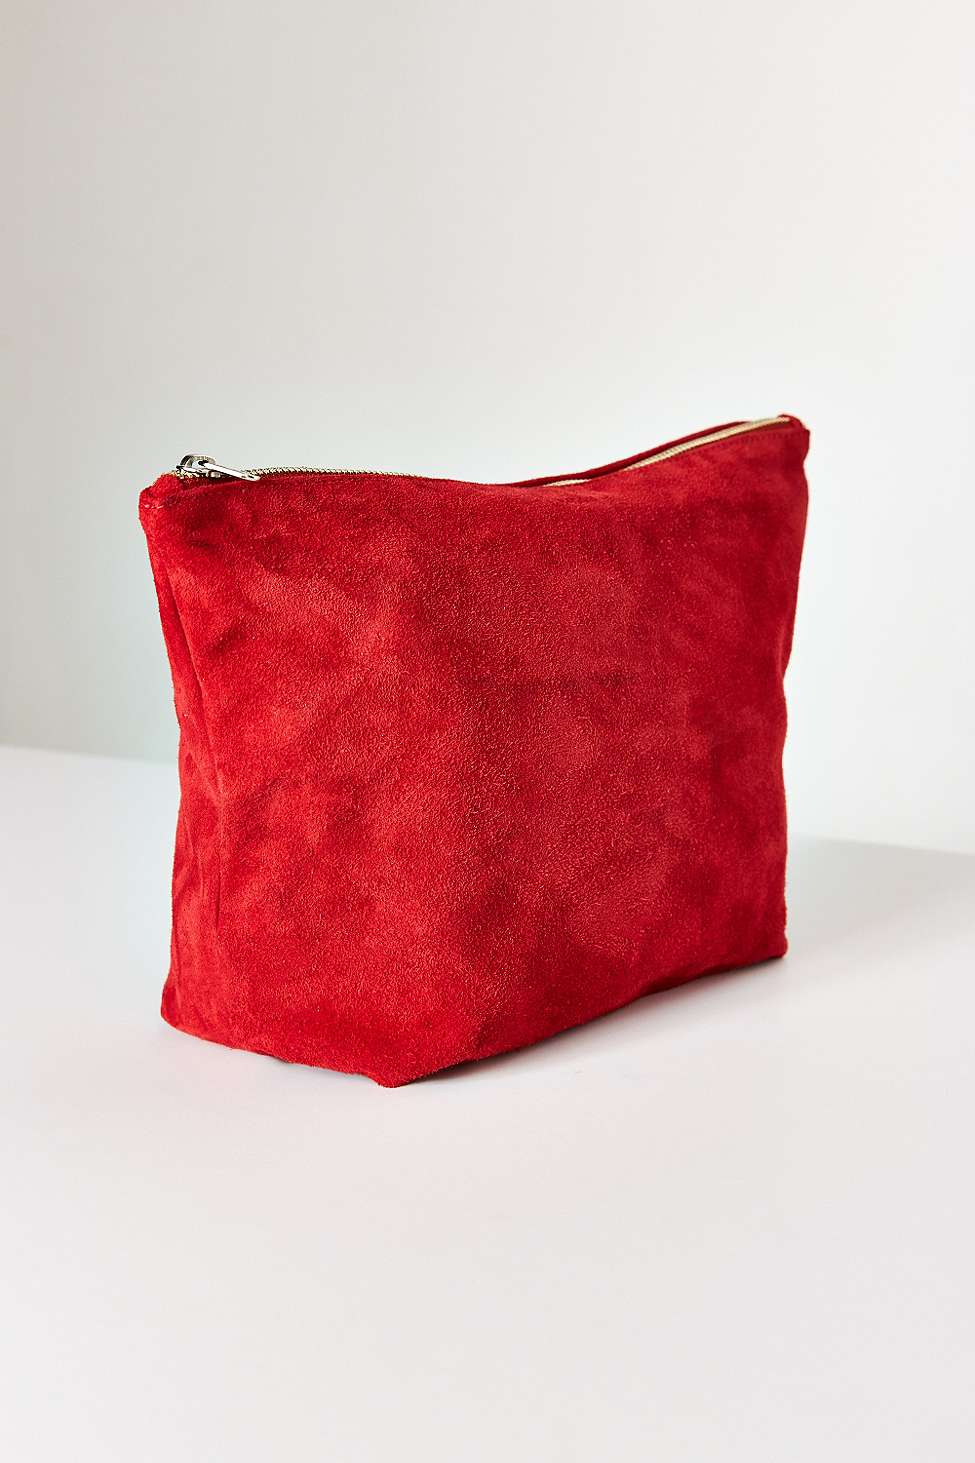 BAGGU Large Red Suede Clutch Bag | Urban Outfitters